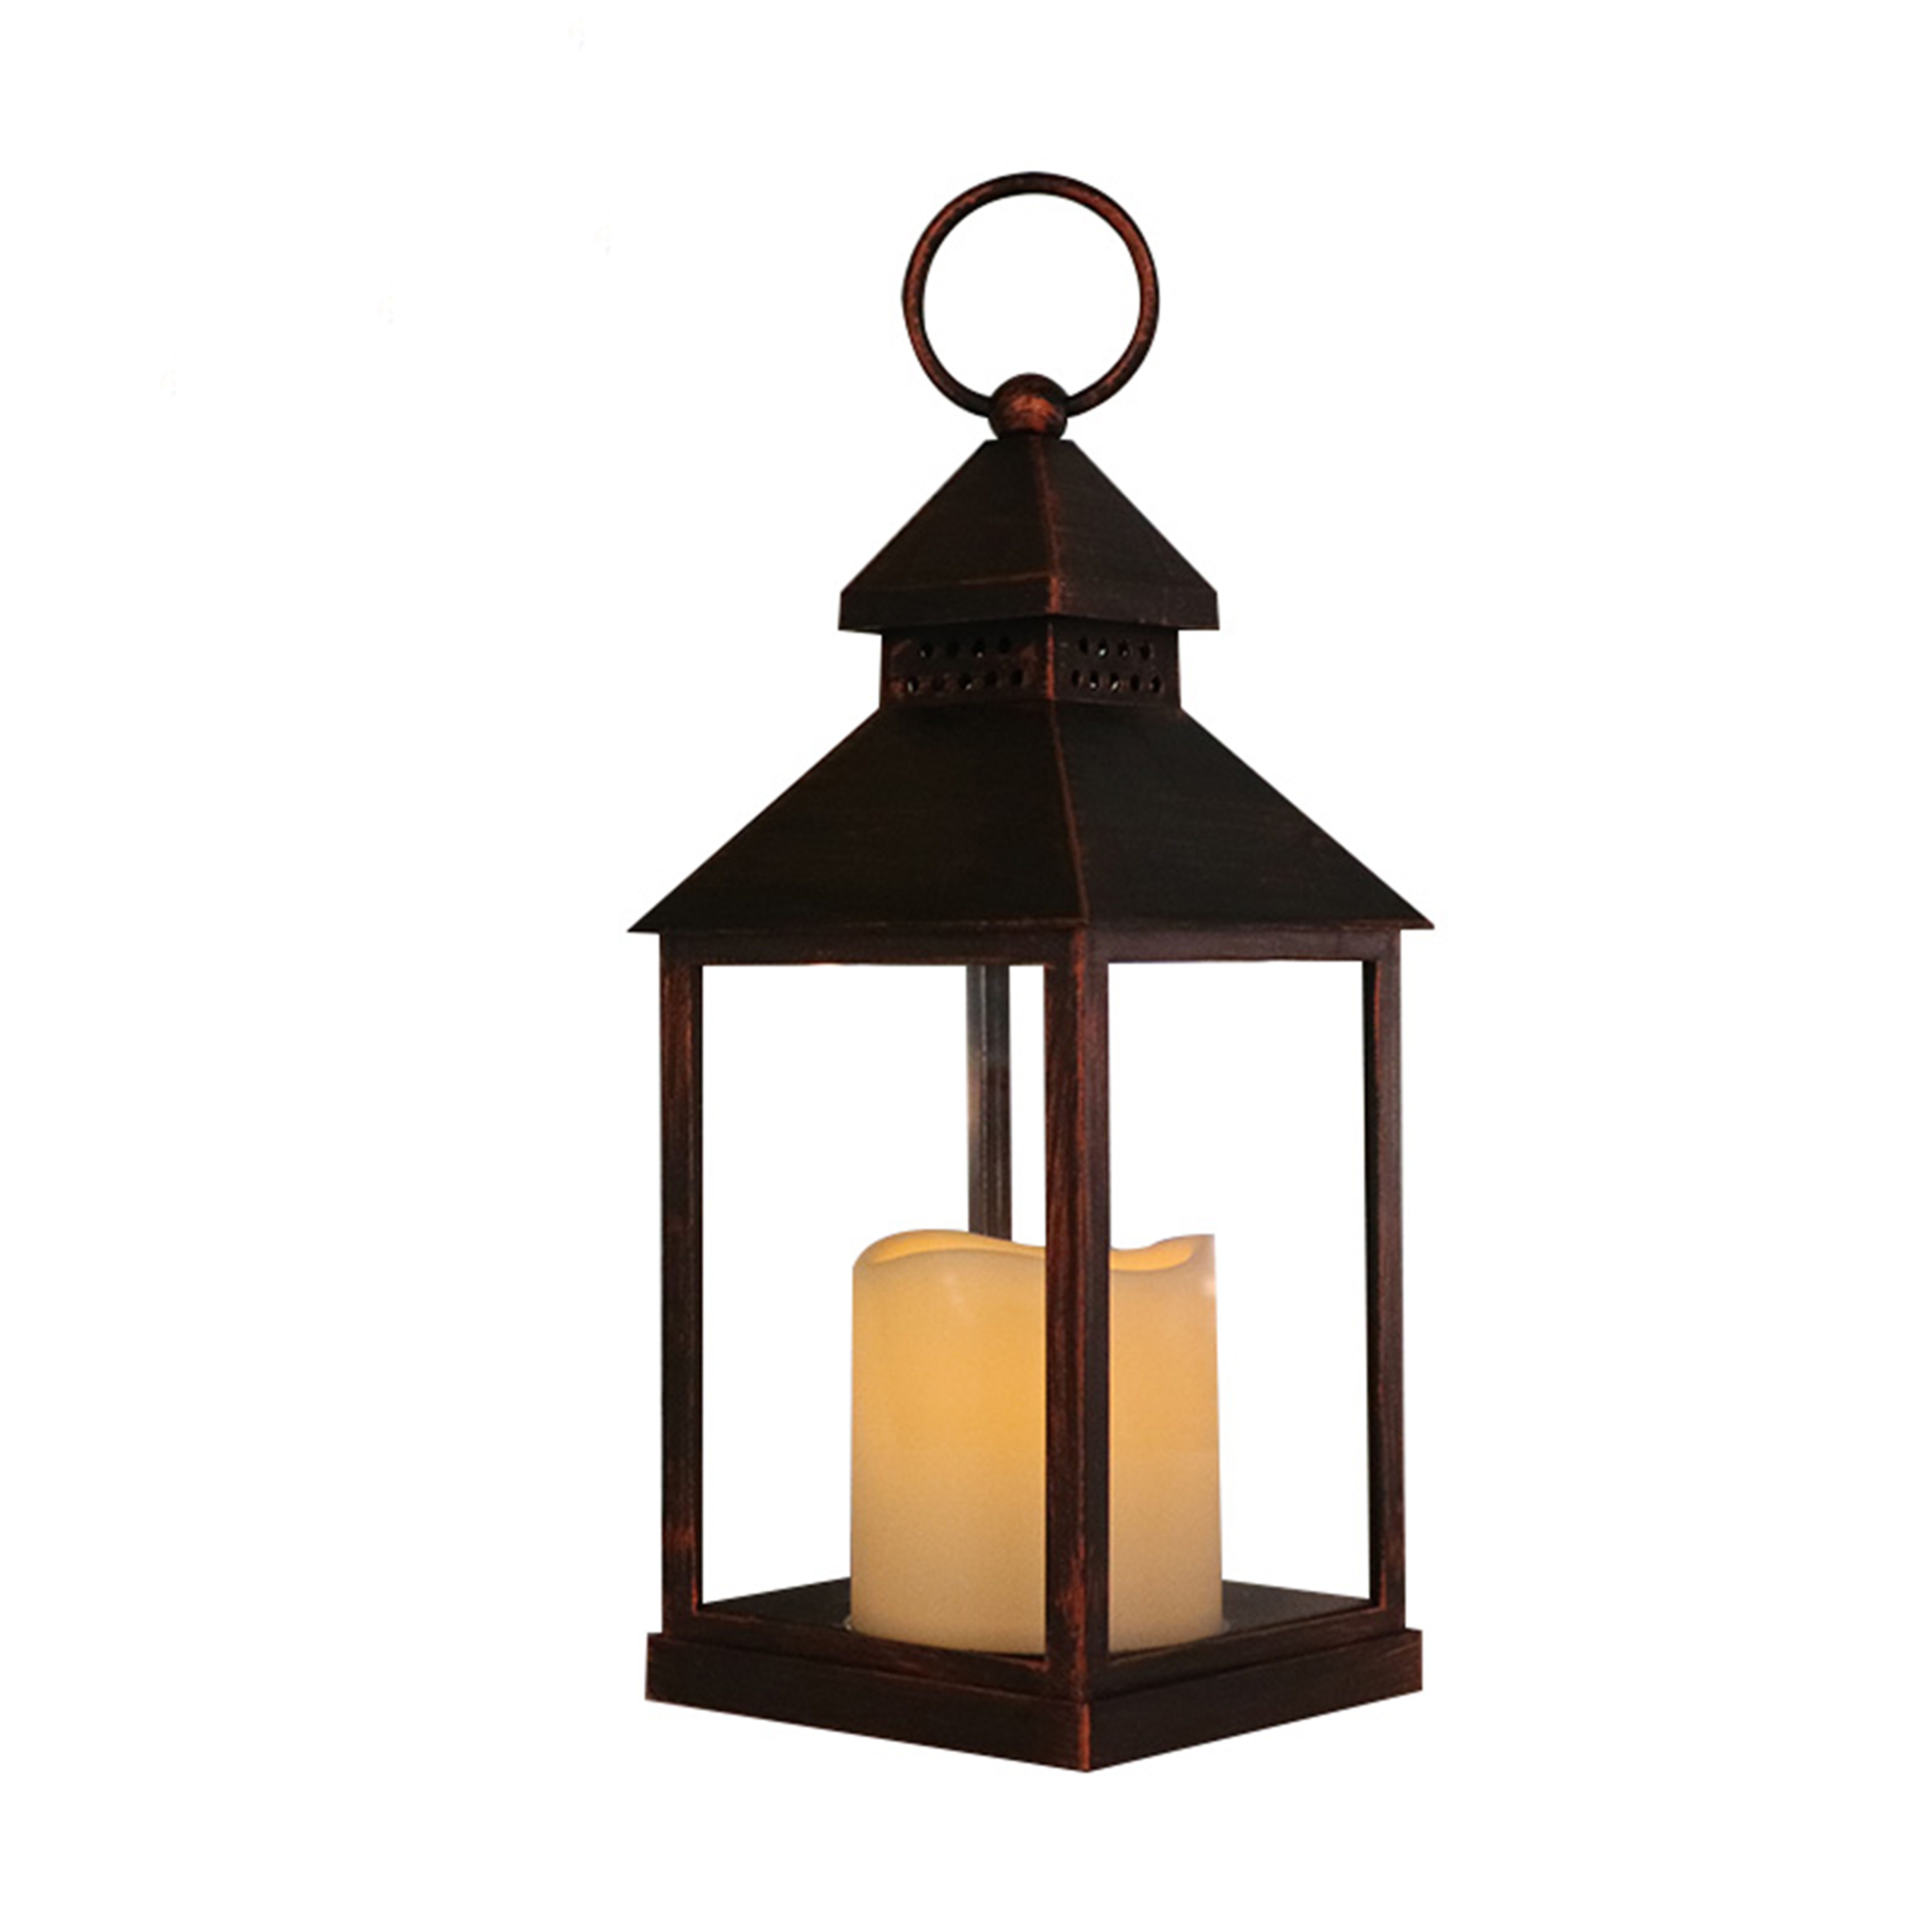 Home Decor Plastic High Quality Battery Operated Lamp Small candle Memorial Lantern